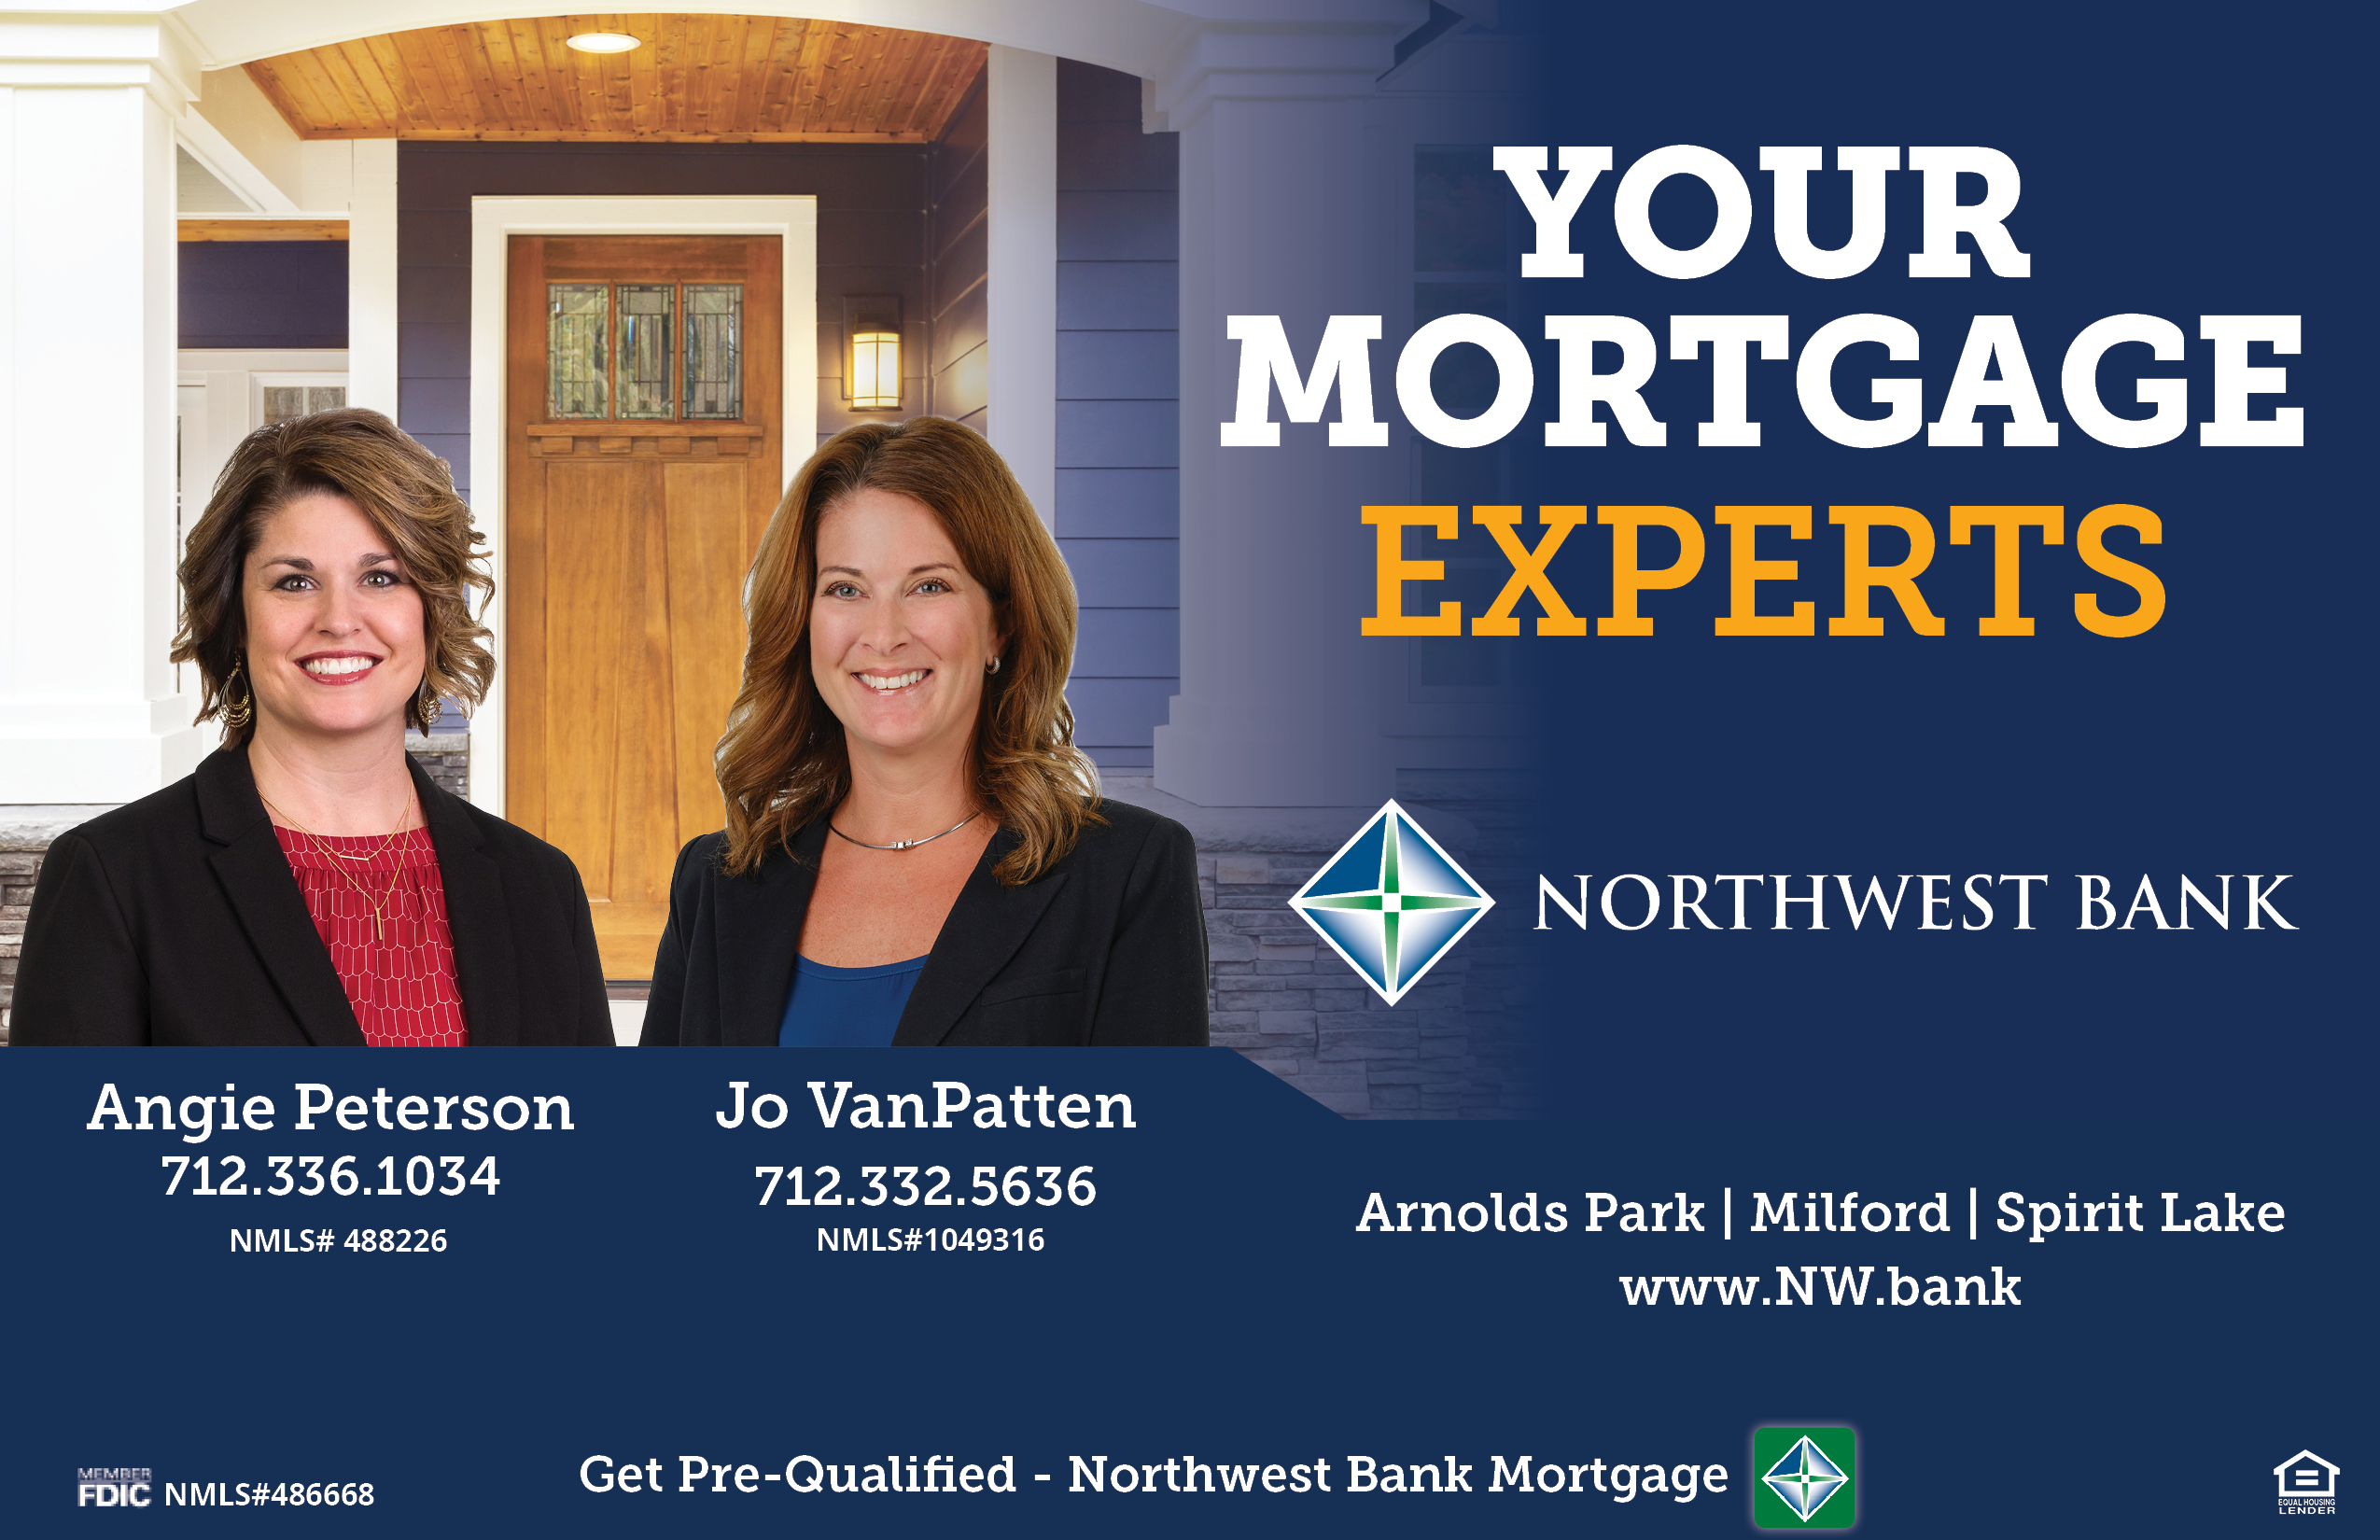 Parade of Homes_Your Mortgage Experts 5.21